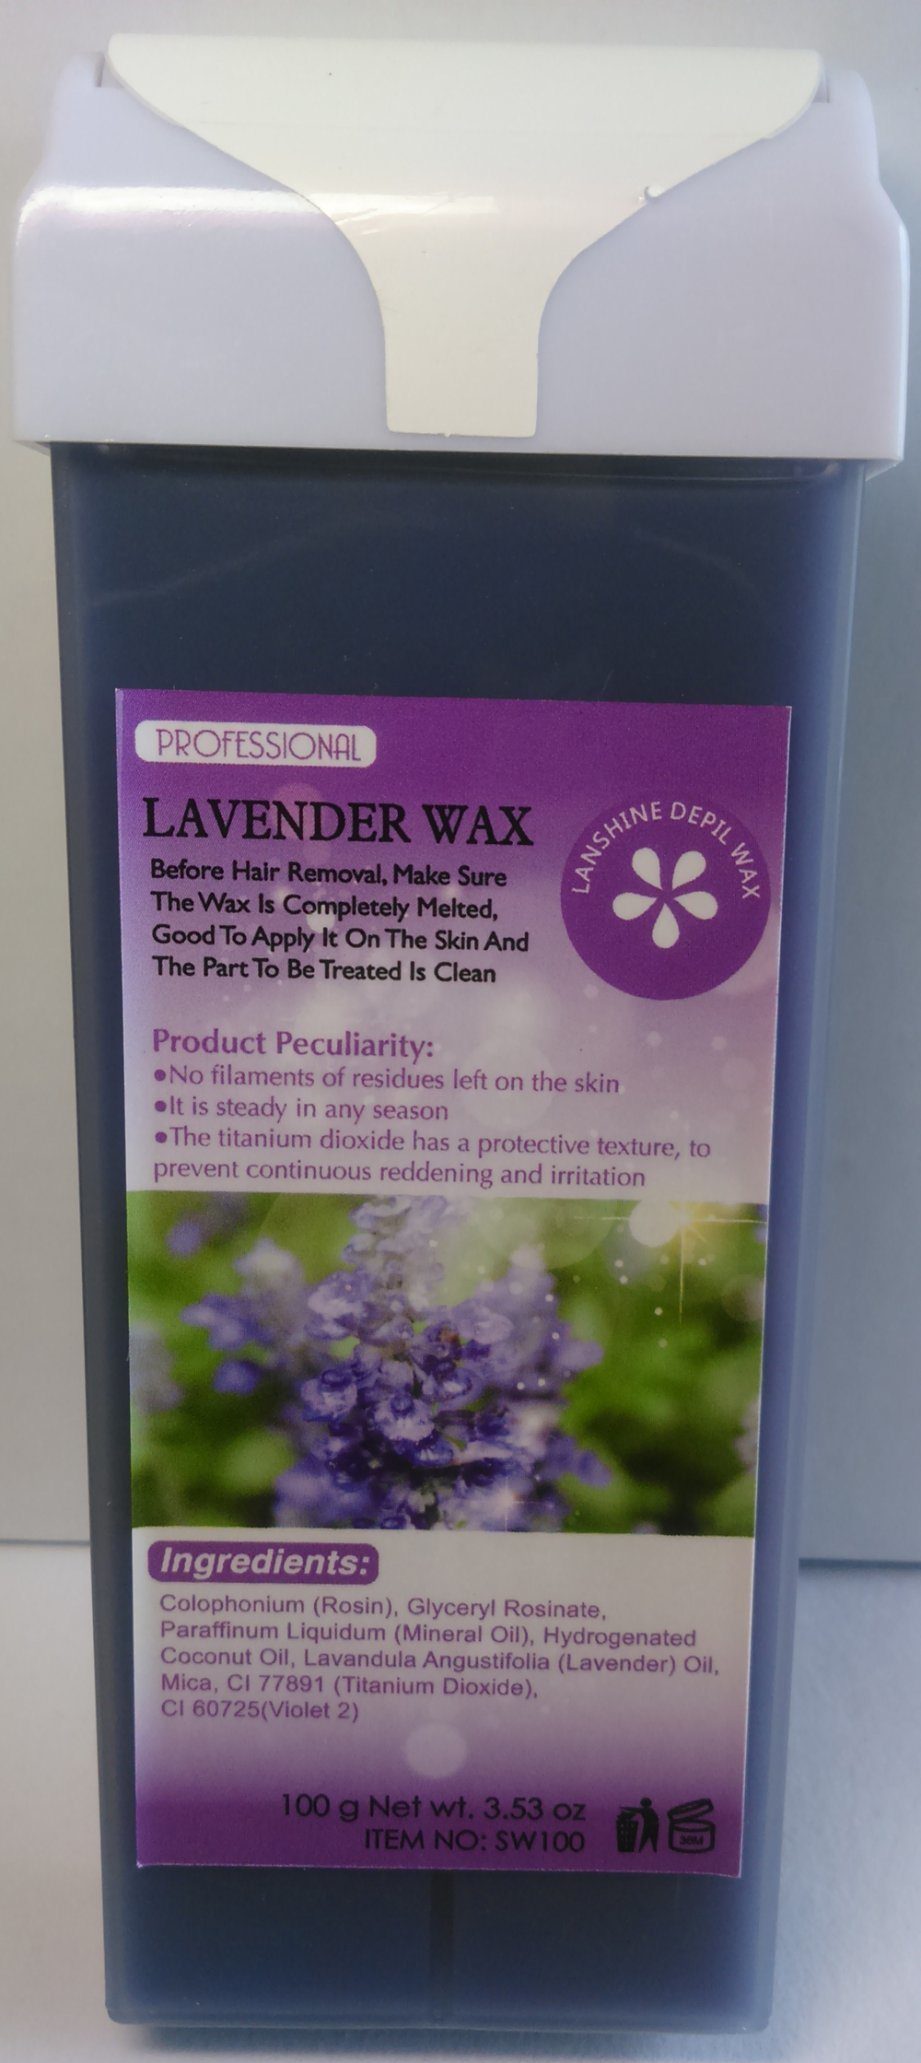 Roll-on Depilatory Wax Lavender Creme Wax